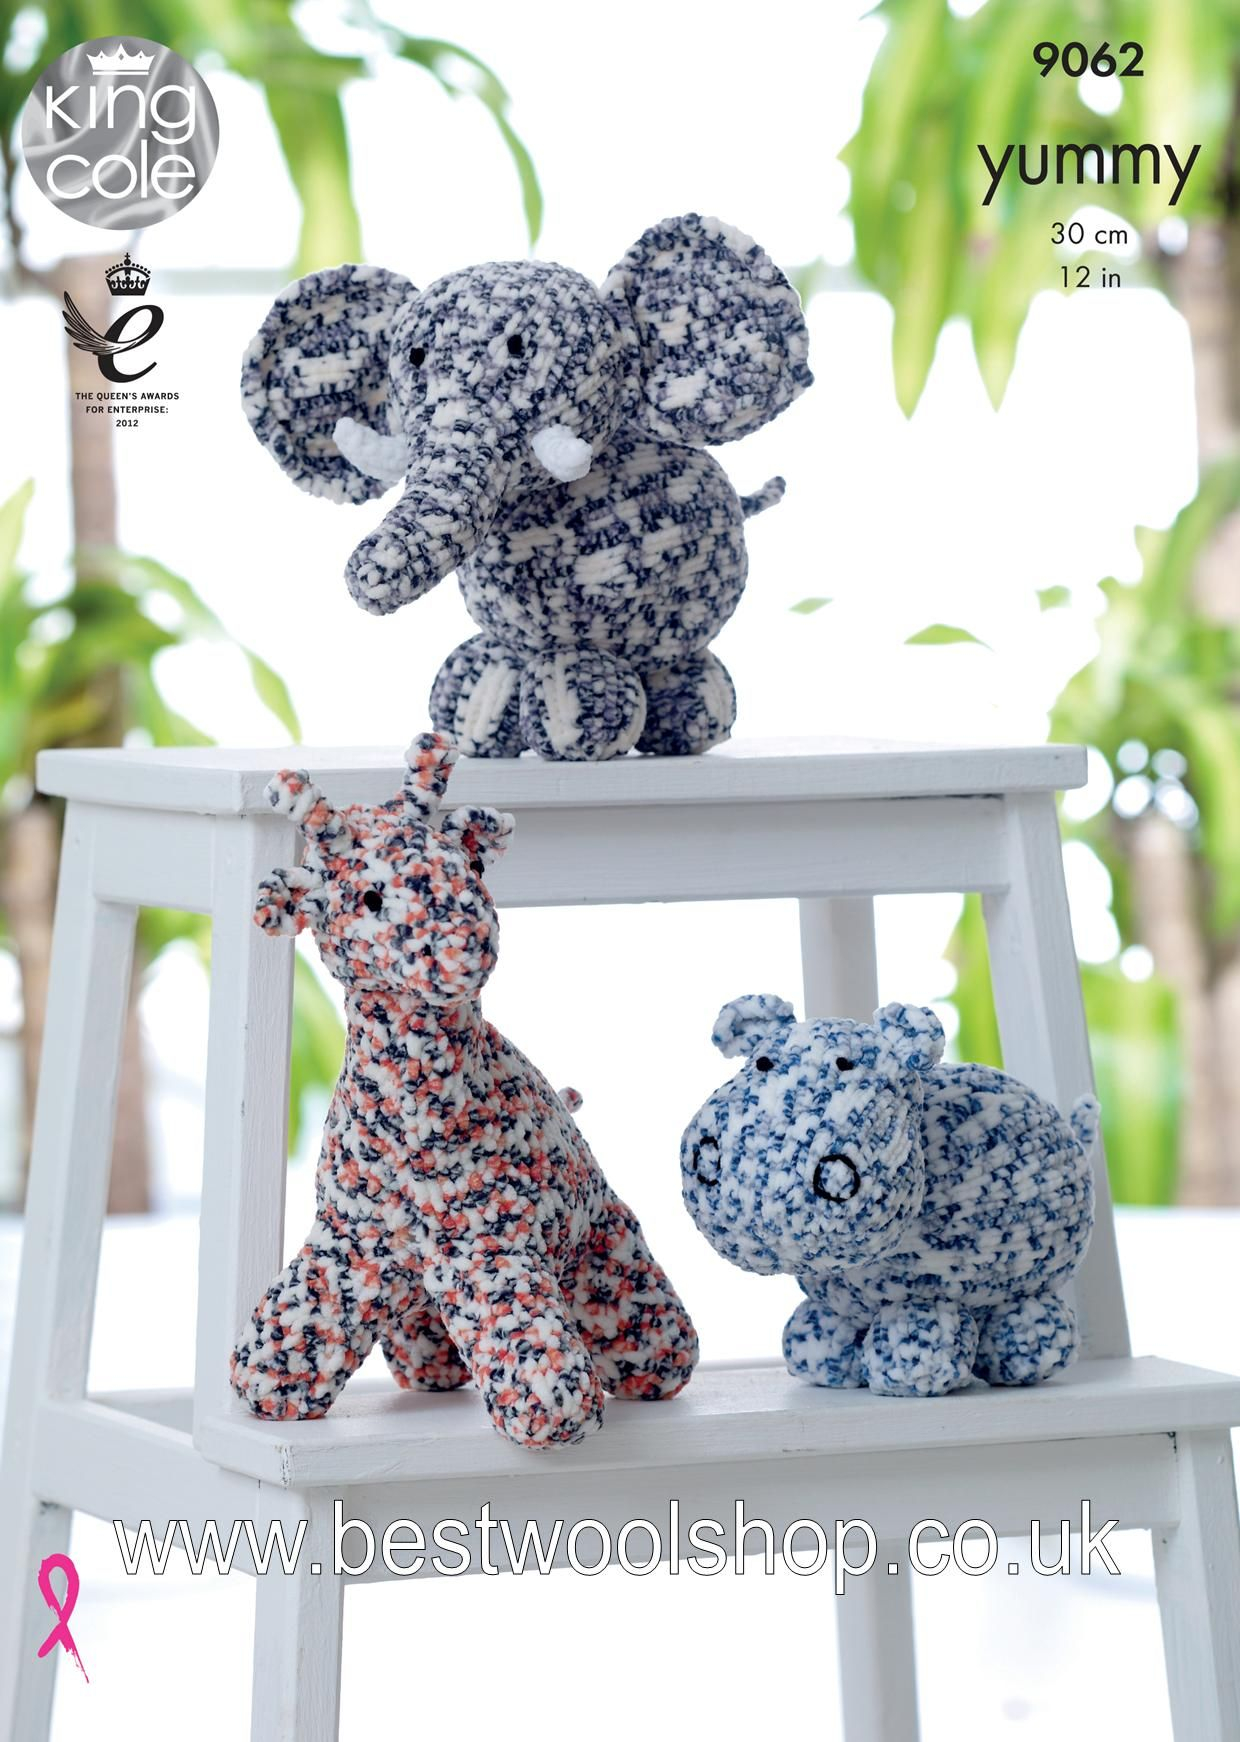 Knitting Patterns For Toys Uk 9062 King Cole Yummy Chunky Toy Giraffe Hippo Elephant Knitting Pattern